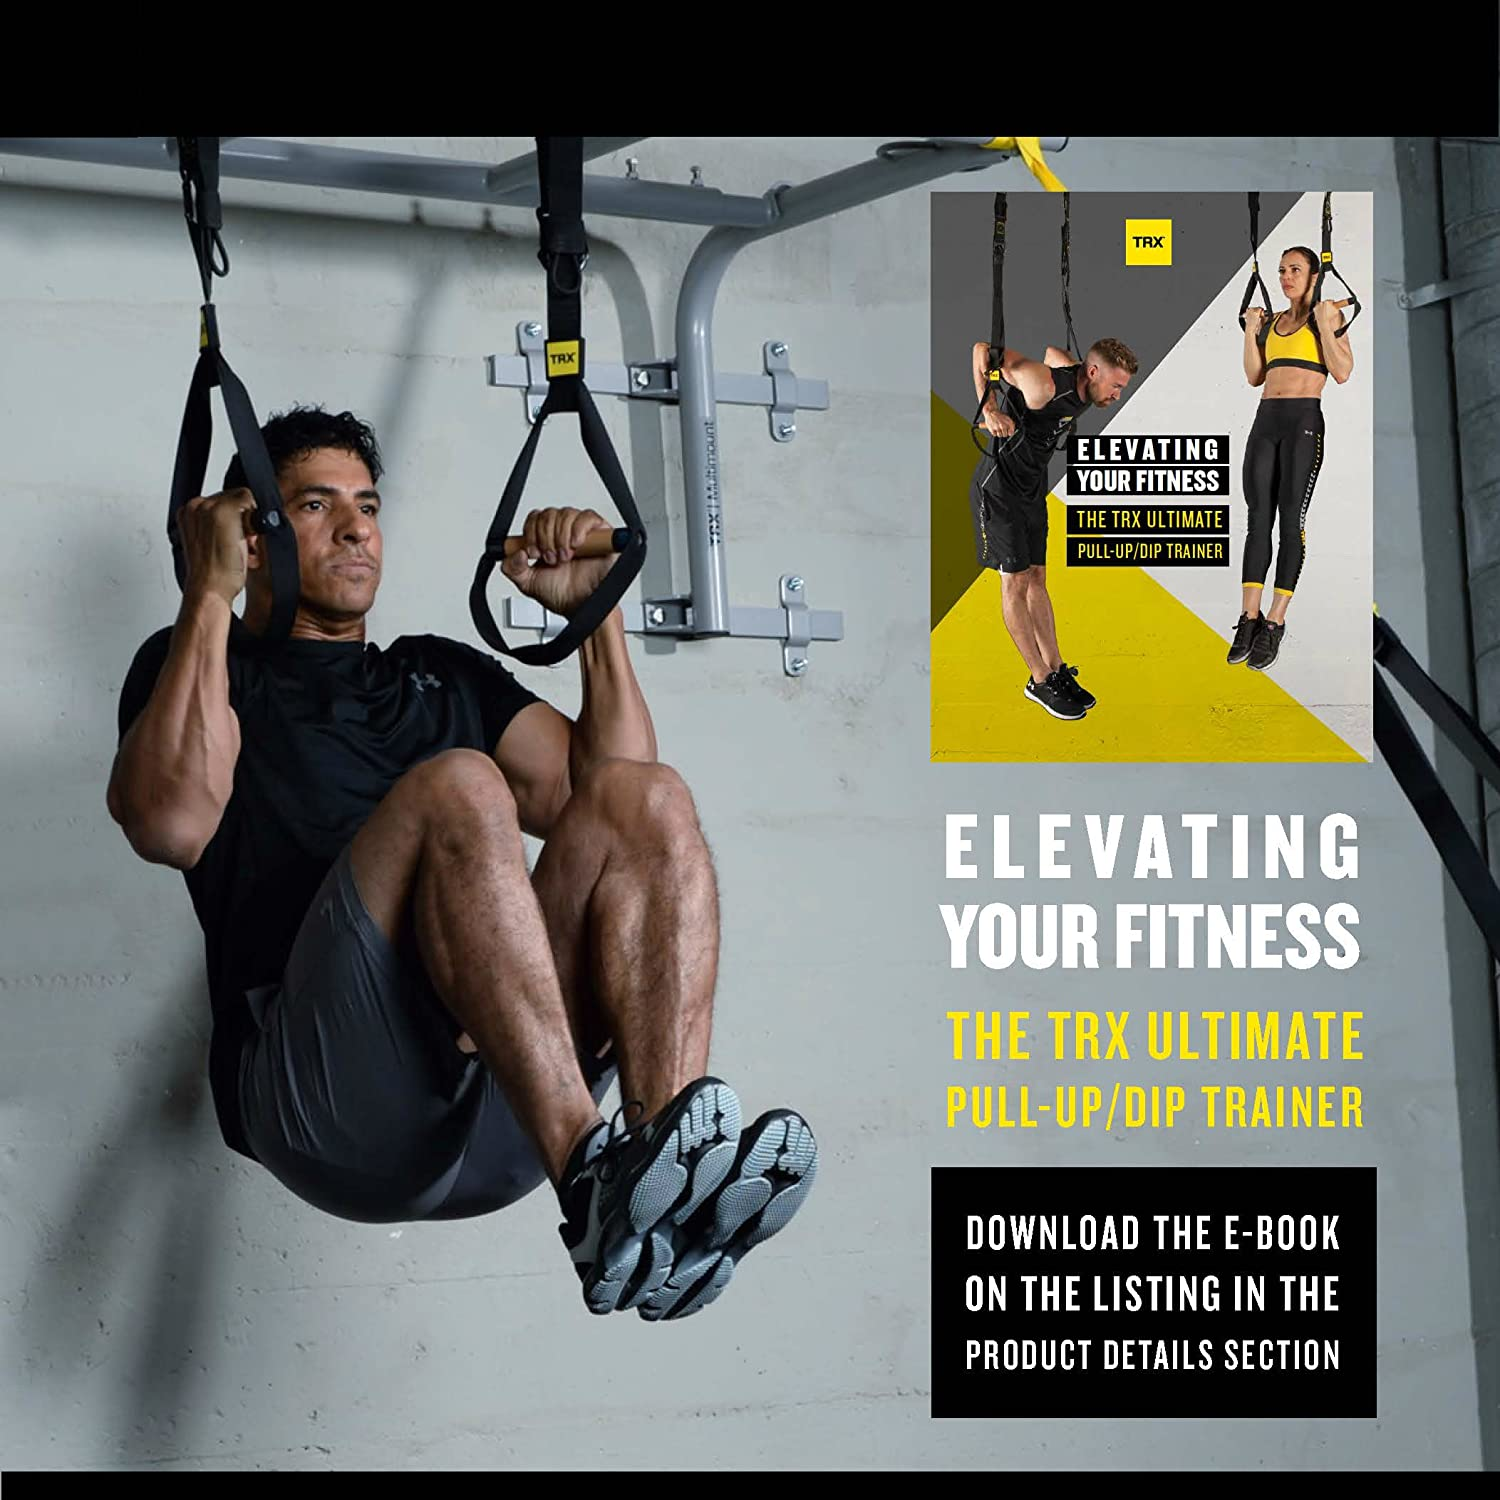 Amazon.com : TRX Training - TRX Ultimate Pull Up/Dip Trainer : Sports &  Outdoors